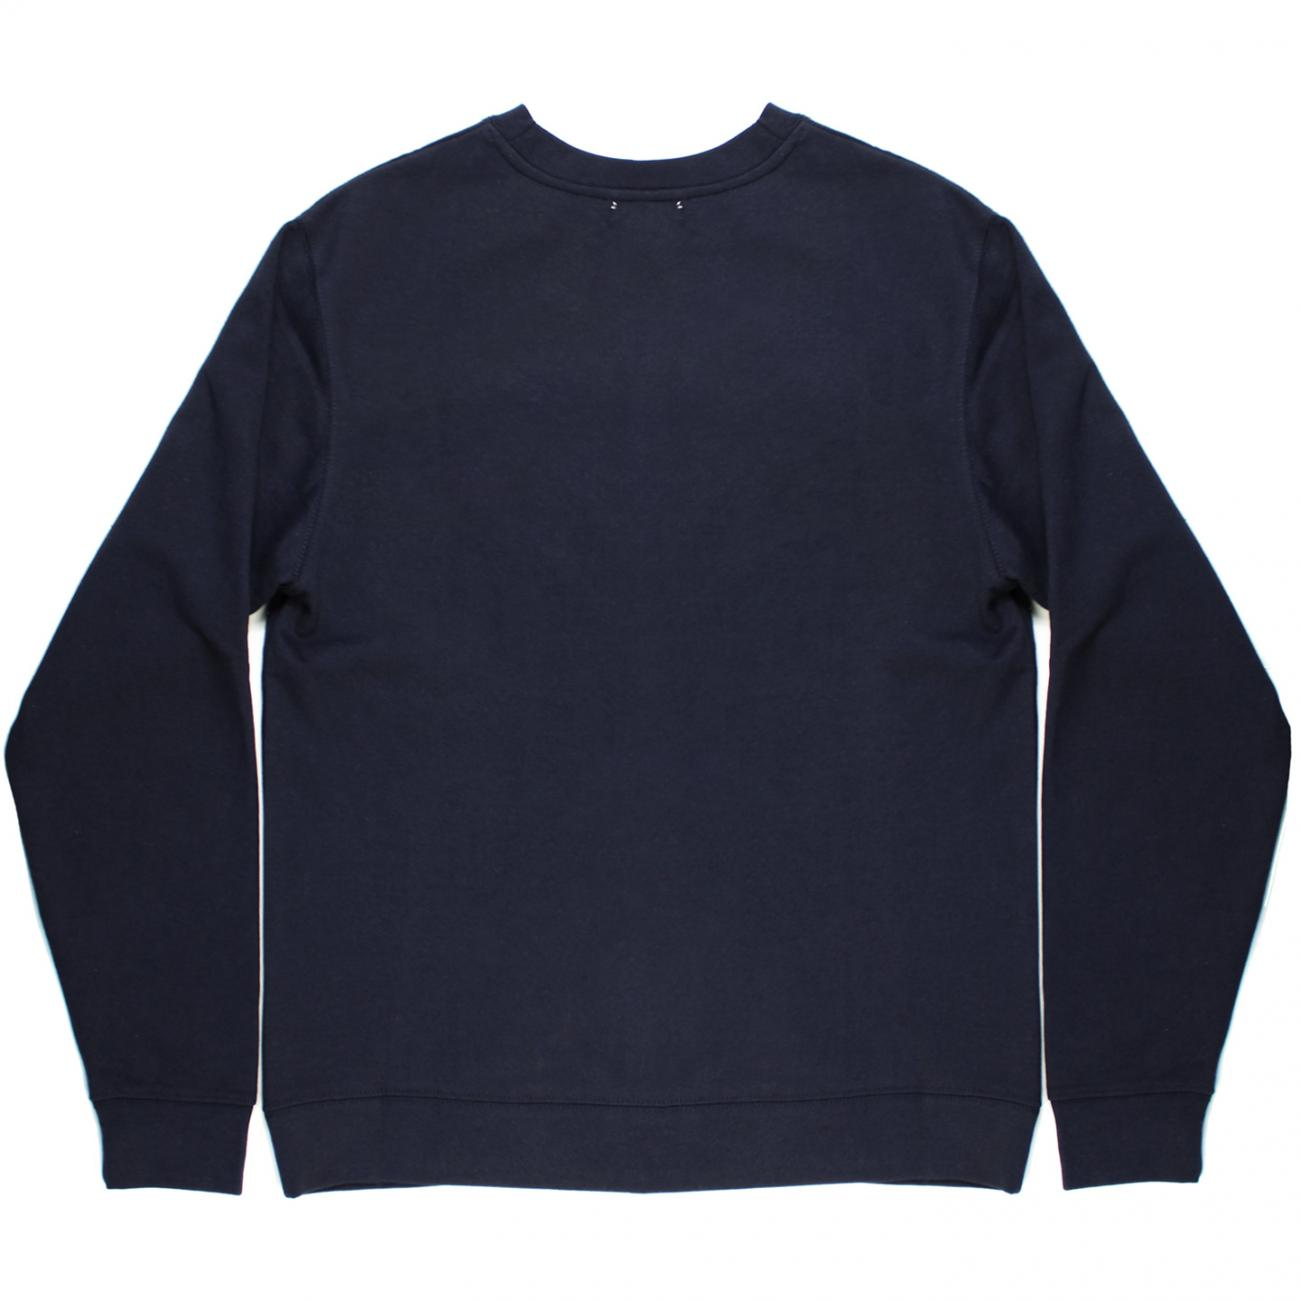 Gurney's Wave screened across chest back navy